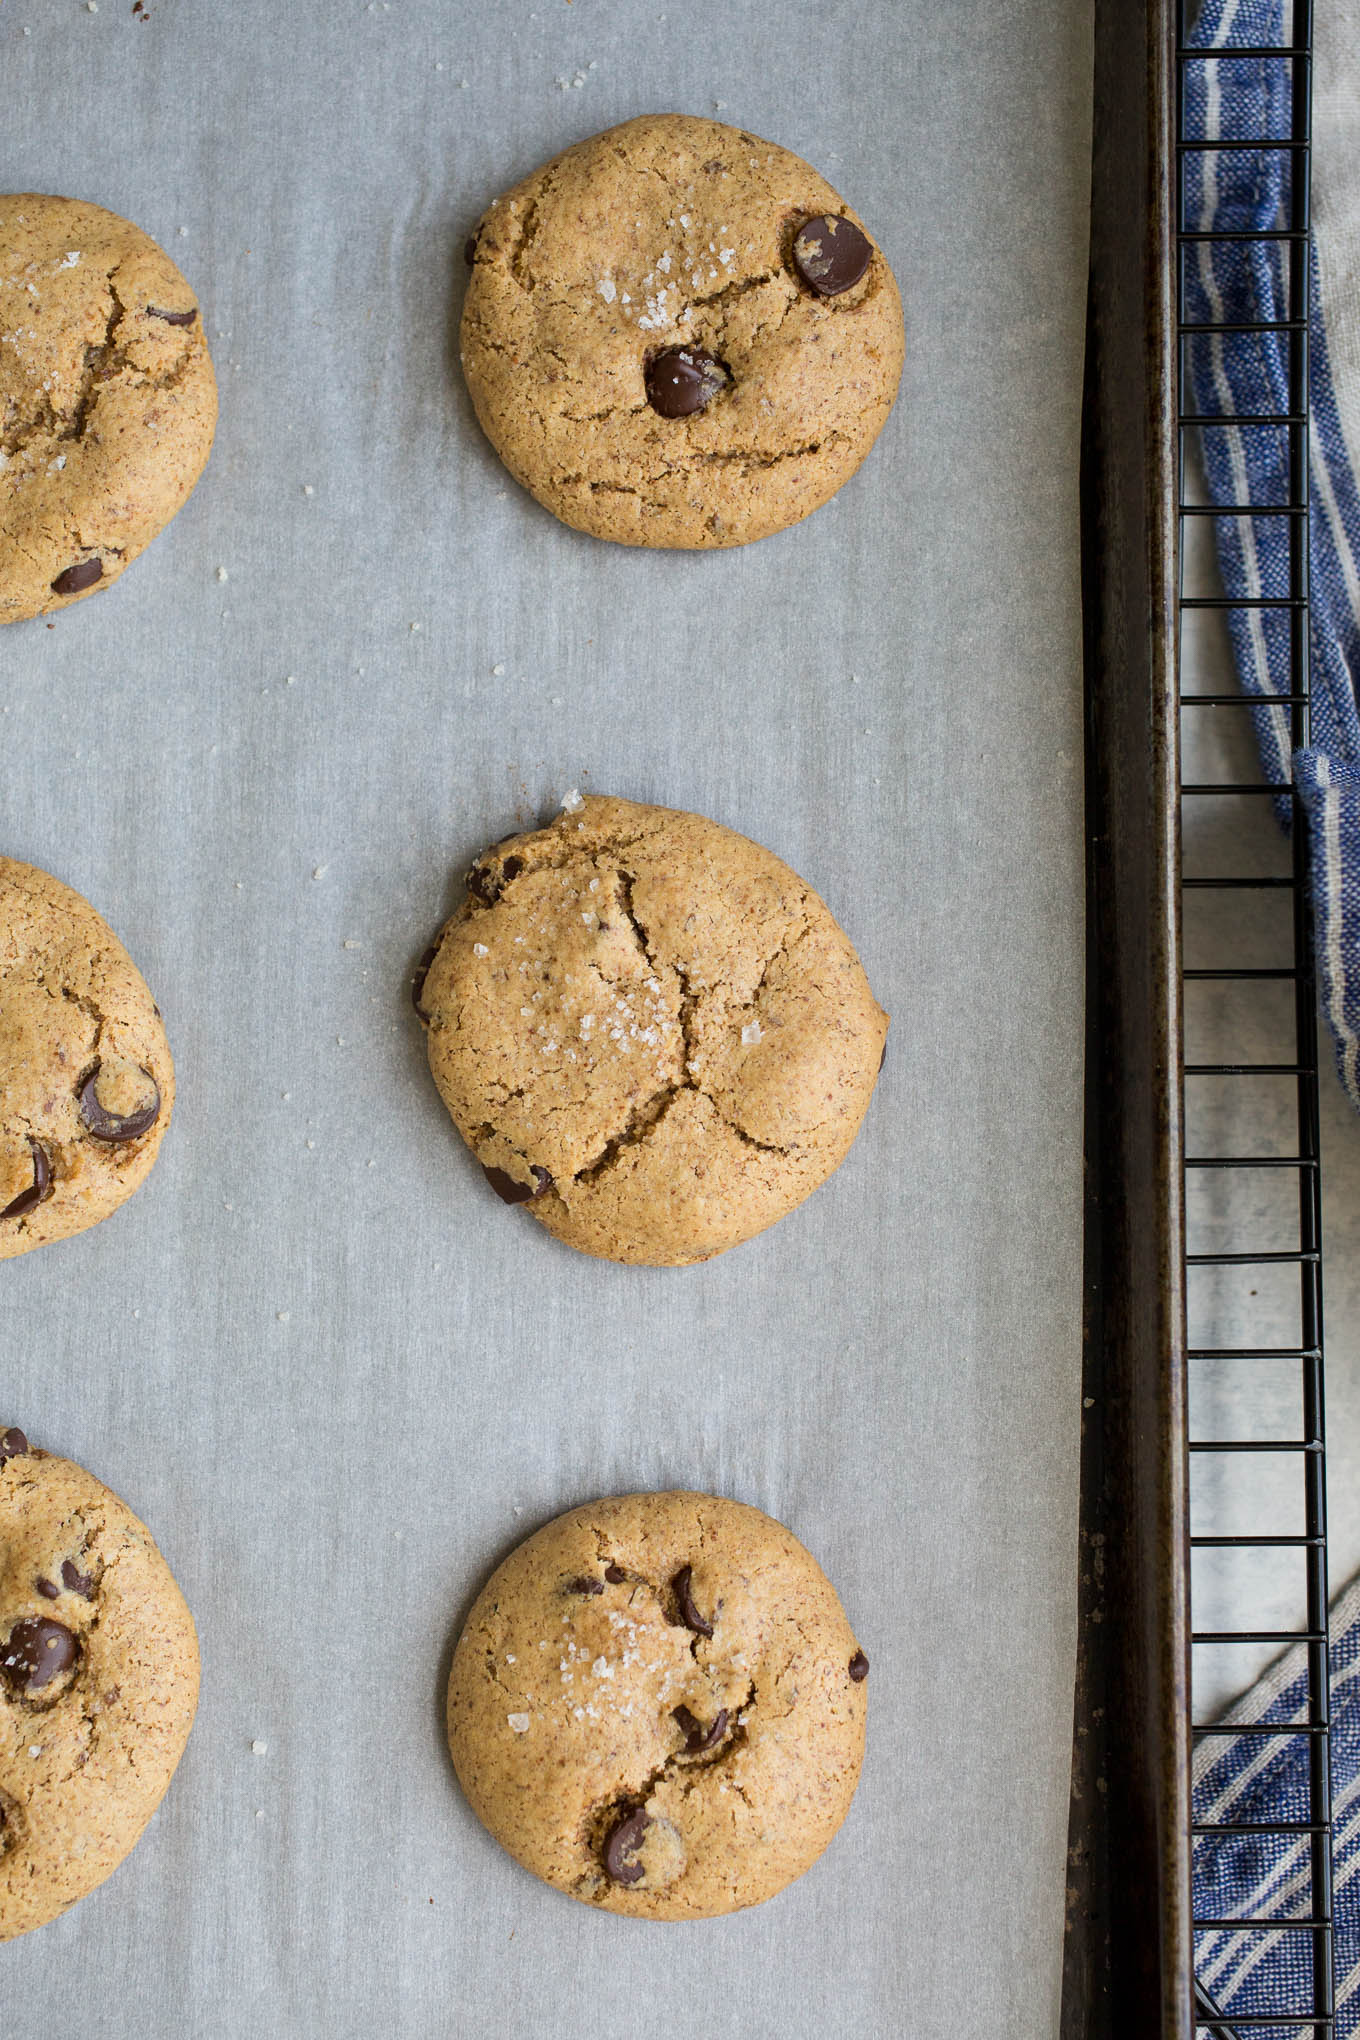 Almond Butter Chocolate Chip Cookies Recipe (gluten-free, vegan, refined sugar-free)